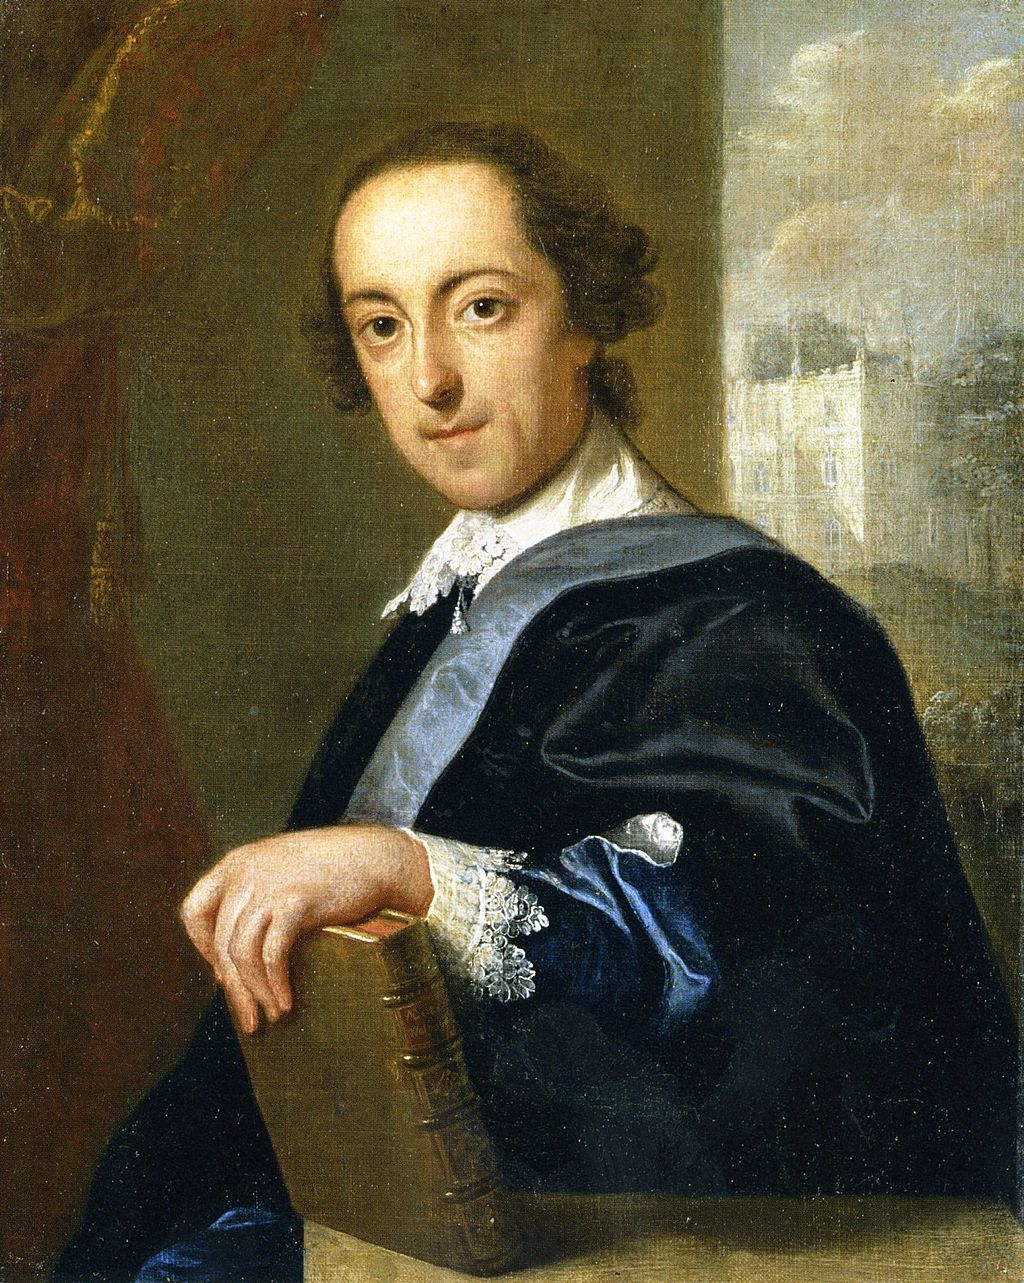 Horace Walpole, painted by John Ecchart, around 1755. (Wikimedia Commons)